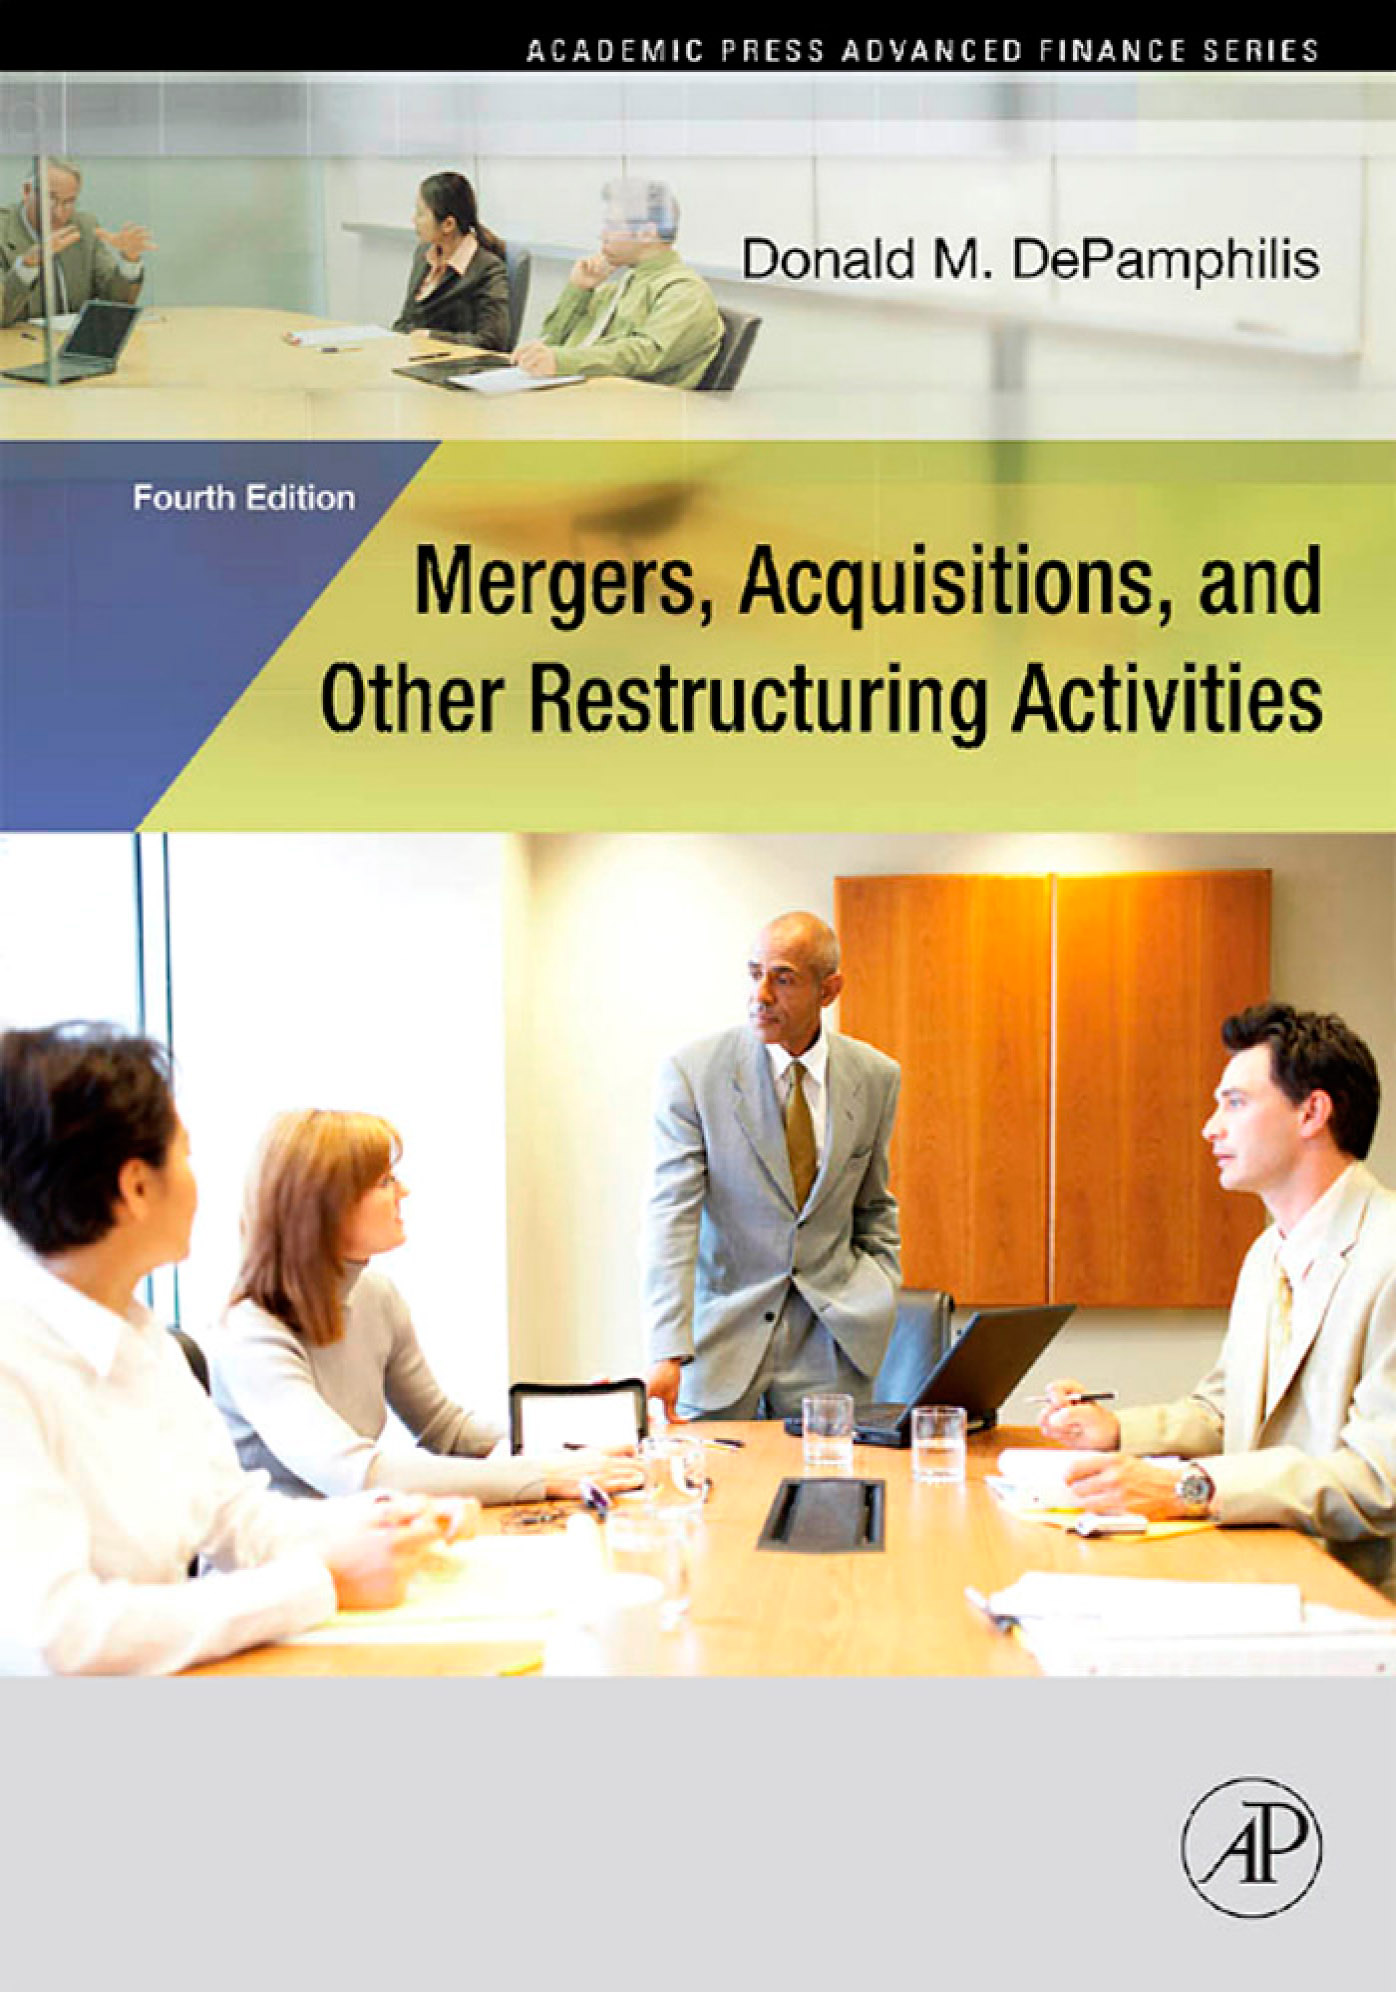 mergers and acquisitions essay